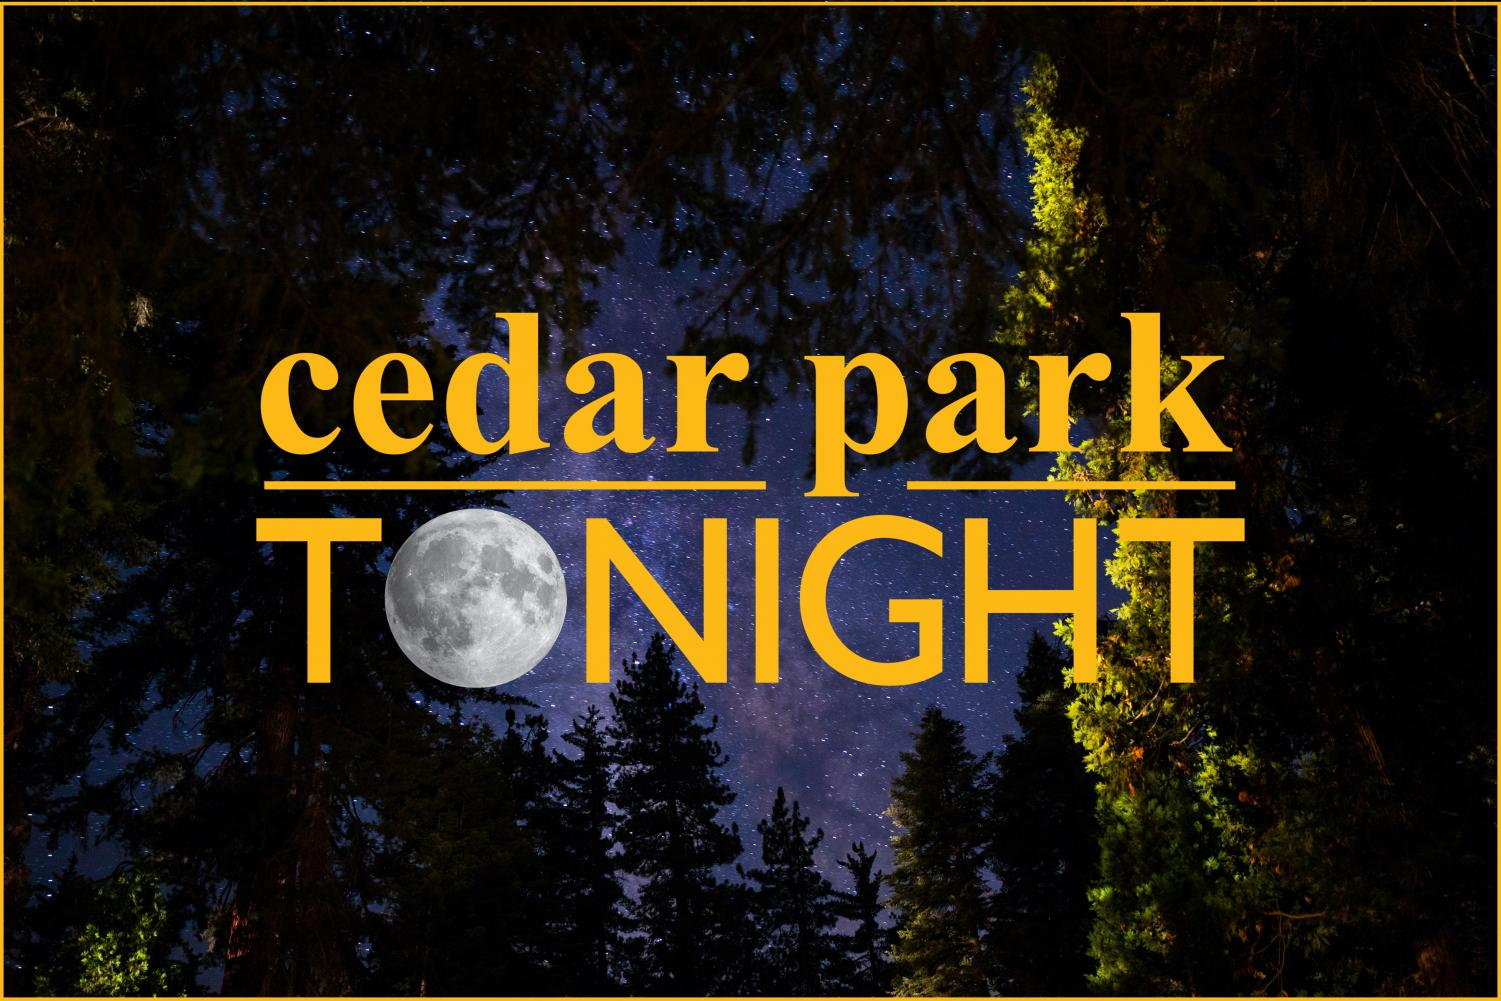 Cedar Park Tonight is taking place on April 25 at 7 p.m. in the Performing Arts Center (PAC).